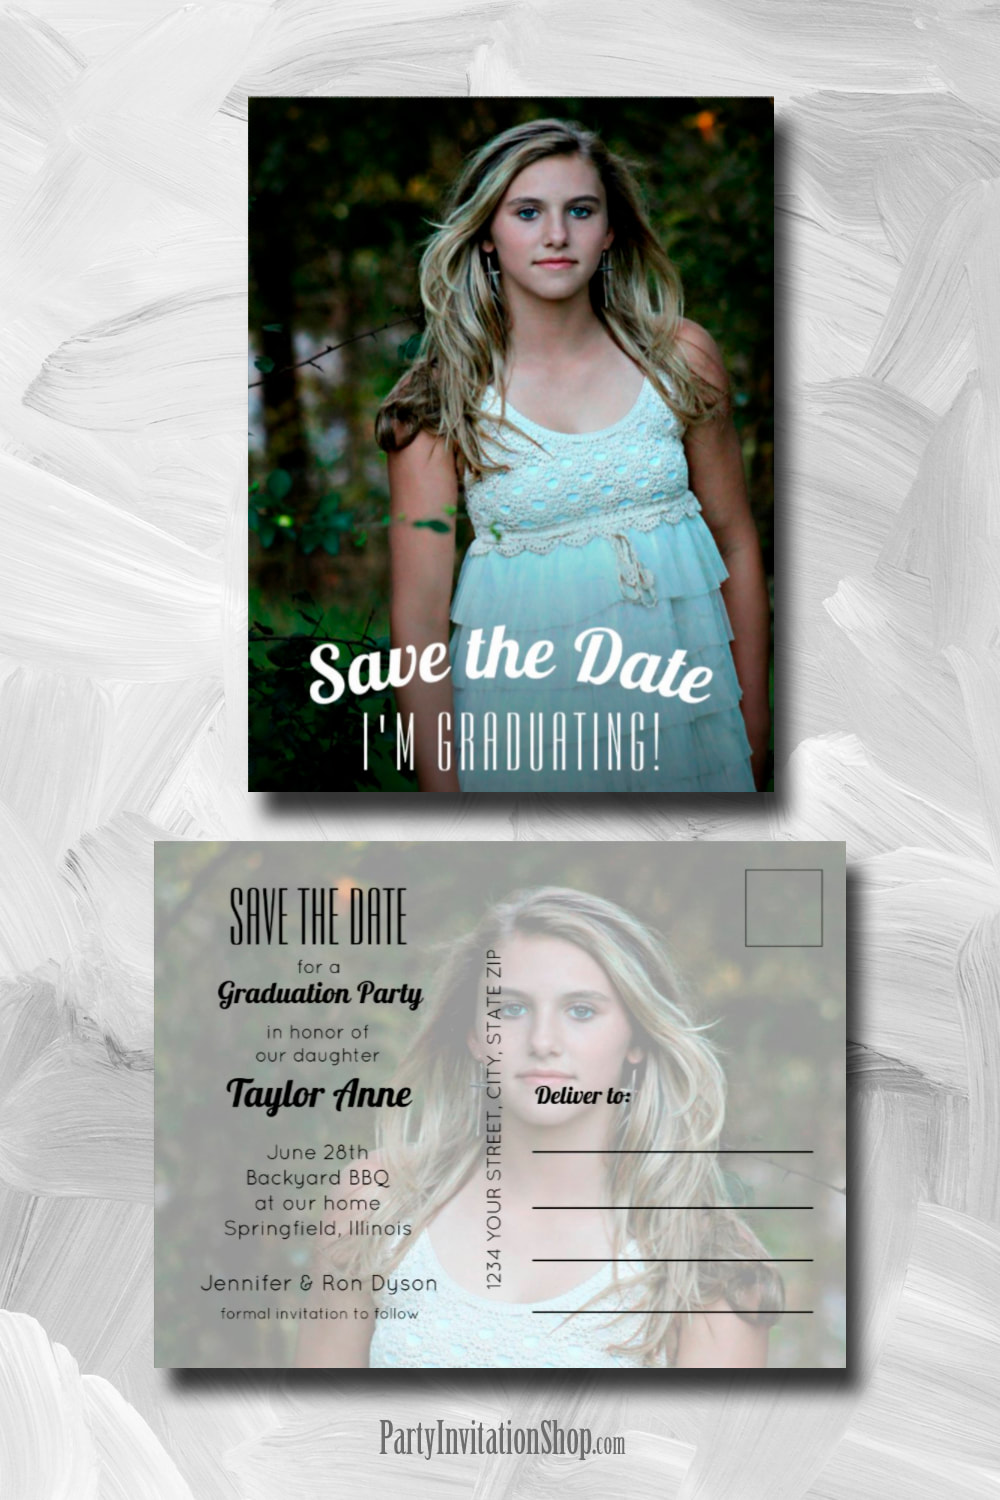 Your graduate's photo makes a perfect graduation save the date cards, party invitations or graduation announcements. We've created postcards and invitations with envelopes, the choice is yours. Upload your photo, personalize with your details and you're done! PartyInvitationShop.com